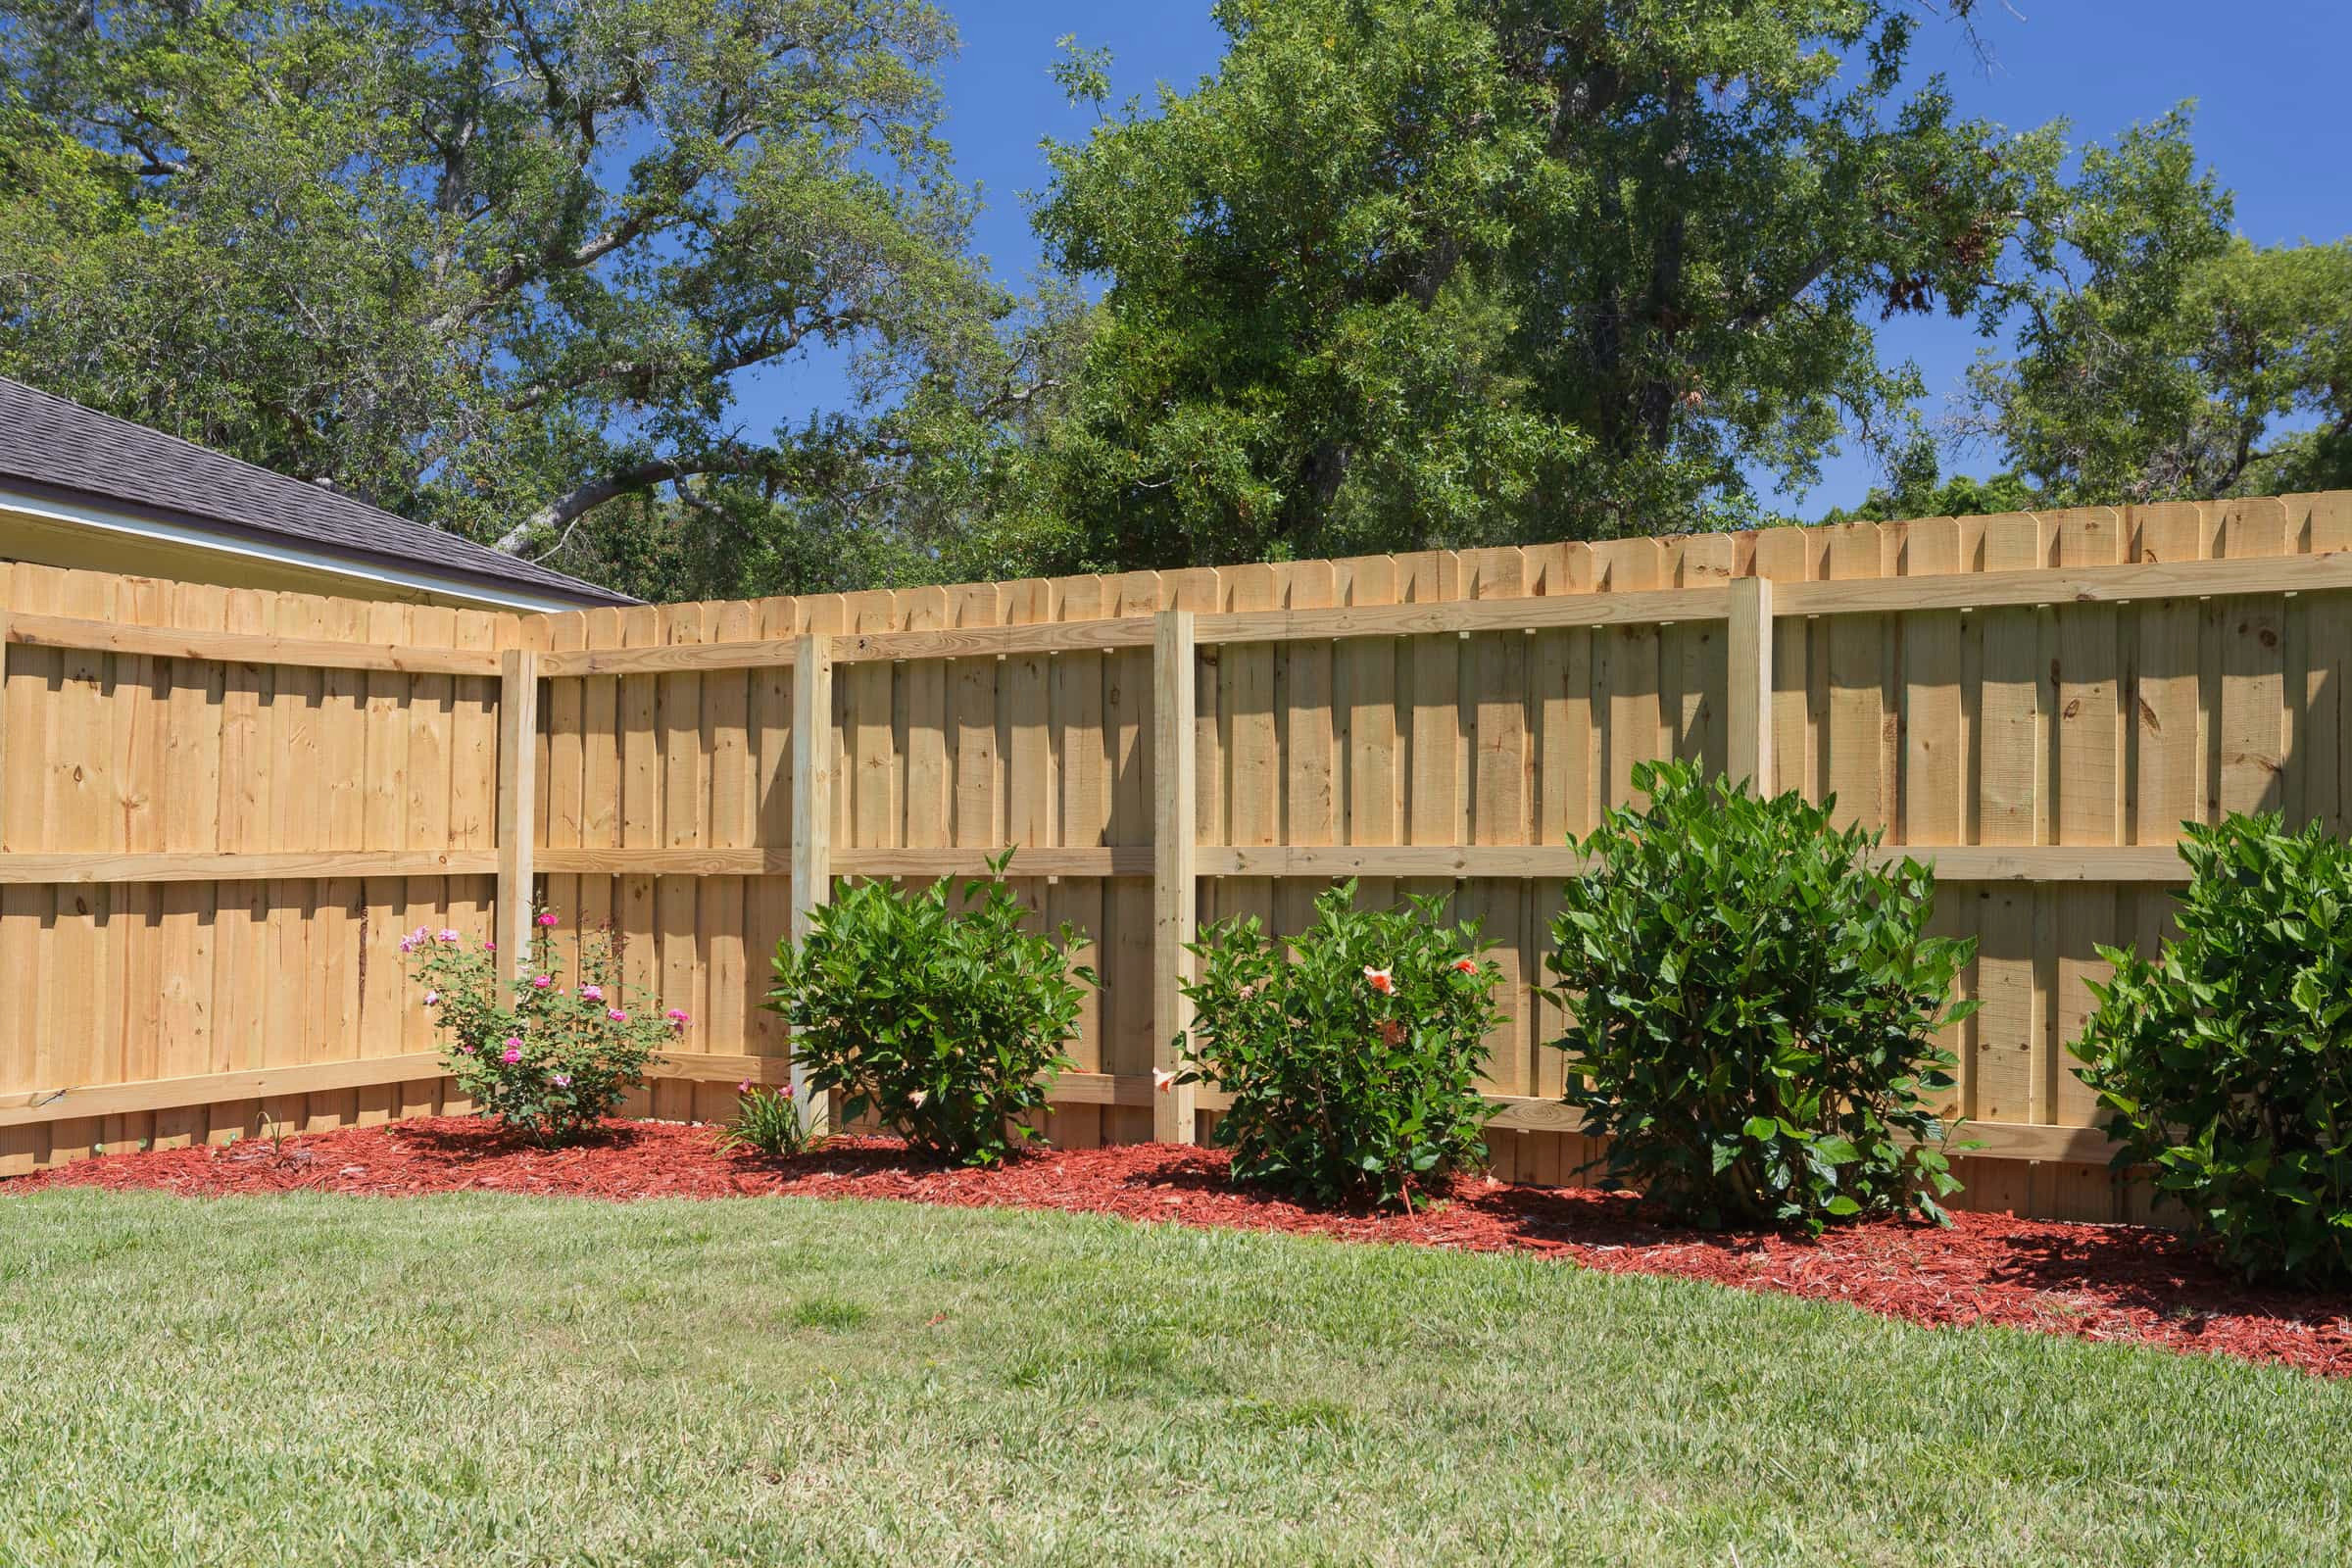 Creative How Much To Put Up A Fence In Backyard Home Design Very with regard to 16 Genius Ways How to Make How Much To Put Up A Fence In Backyard